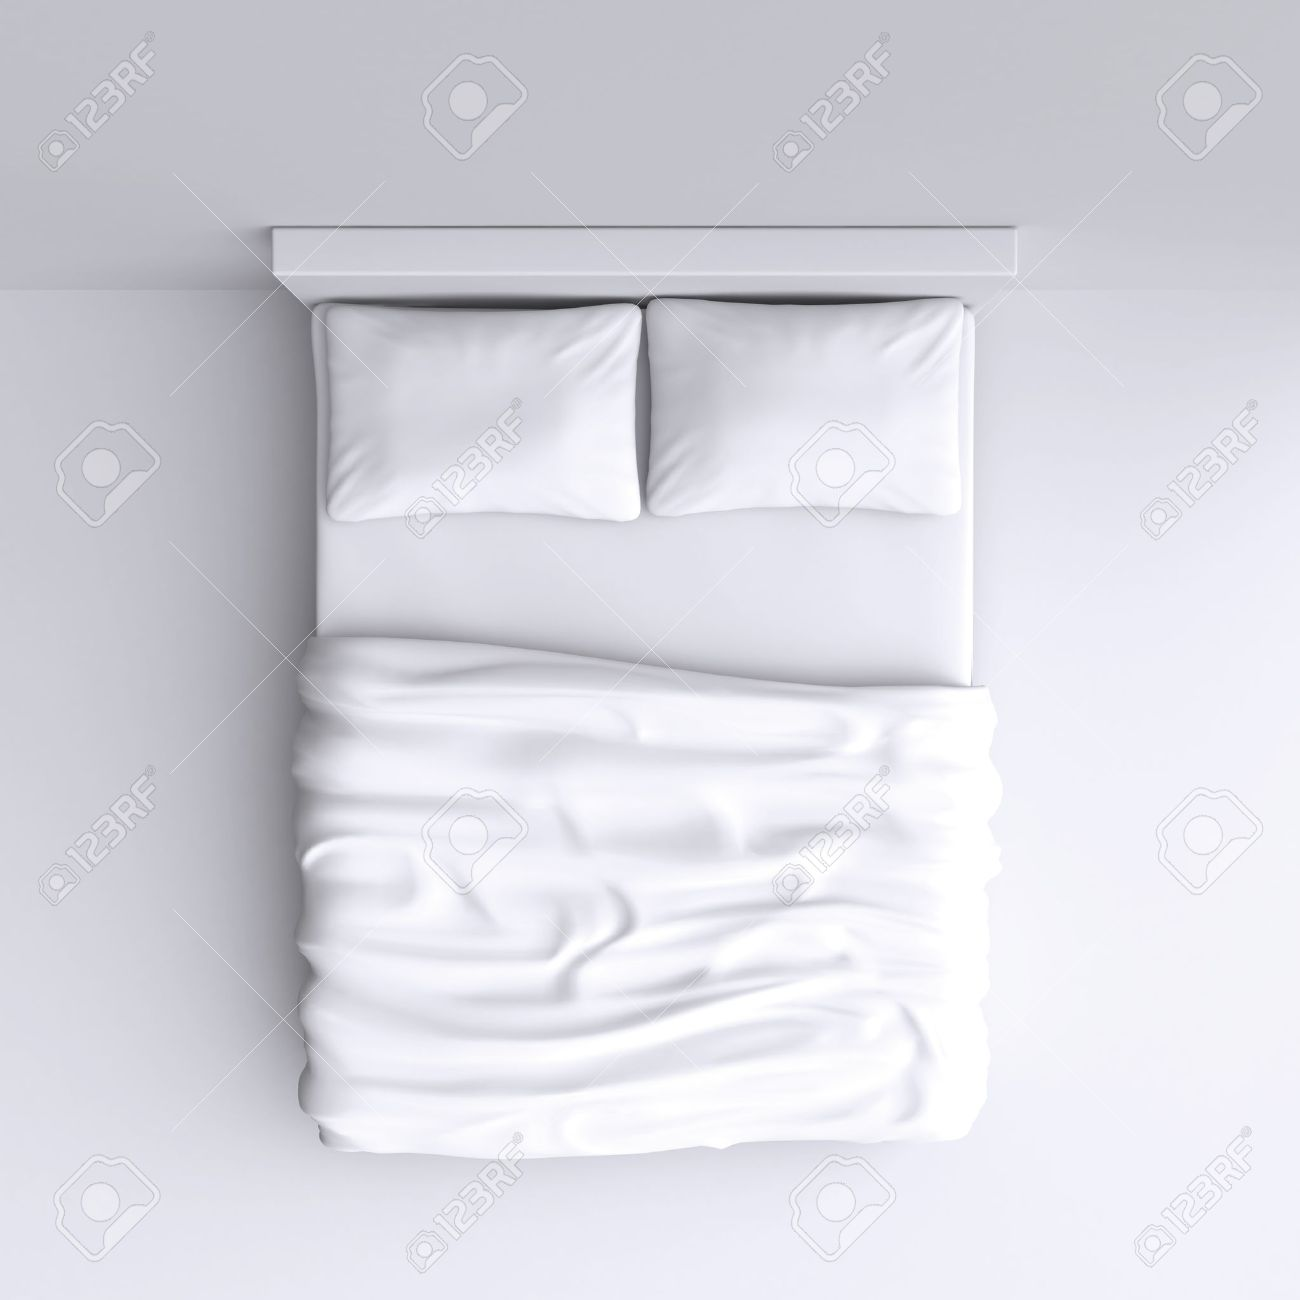 Bed top view Bed Texture Bed With Pillows And Blanket In The Corner Room 3d Illustration Top View Bamboo Sheets Australia Bed With Pillows And Blanket In The Corner Room 3d Illustration